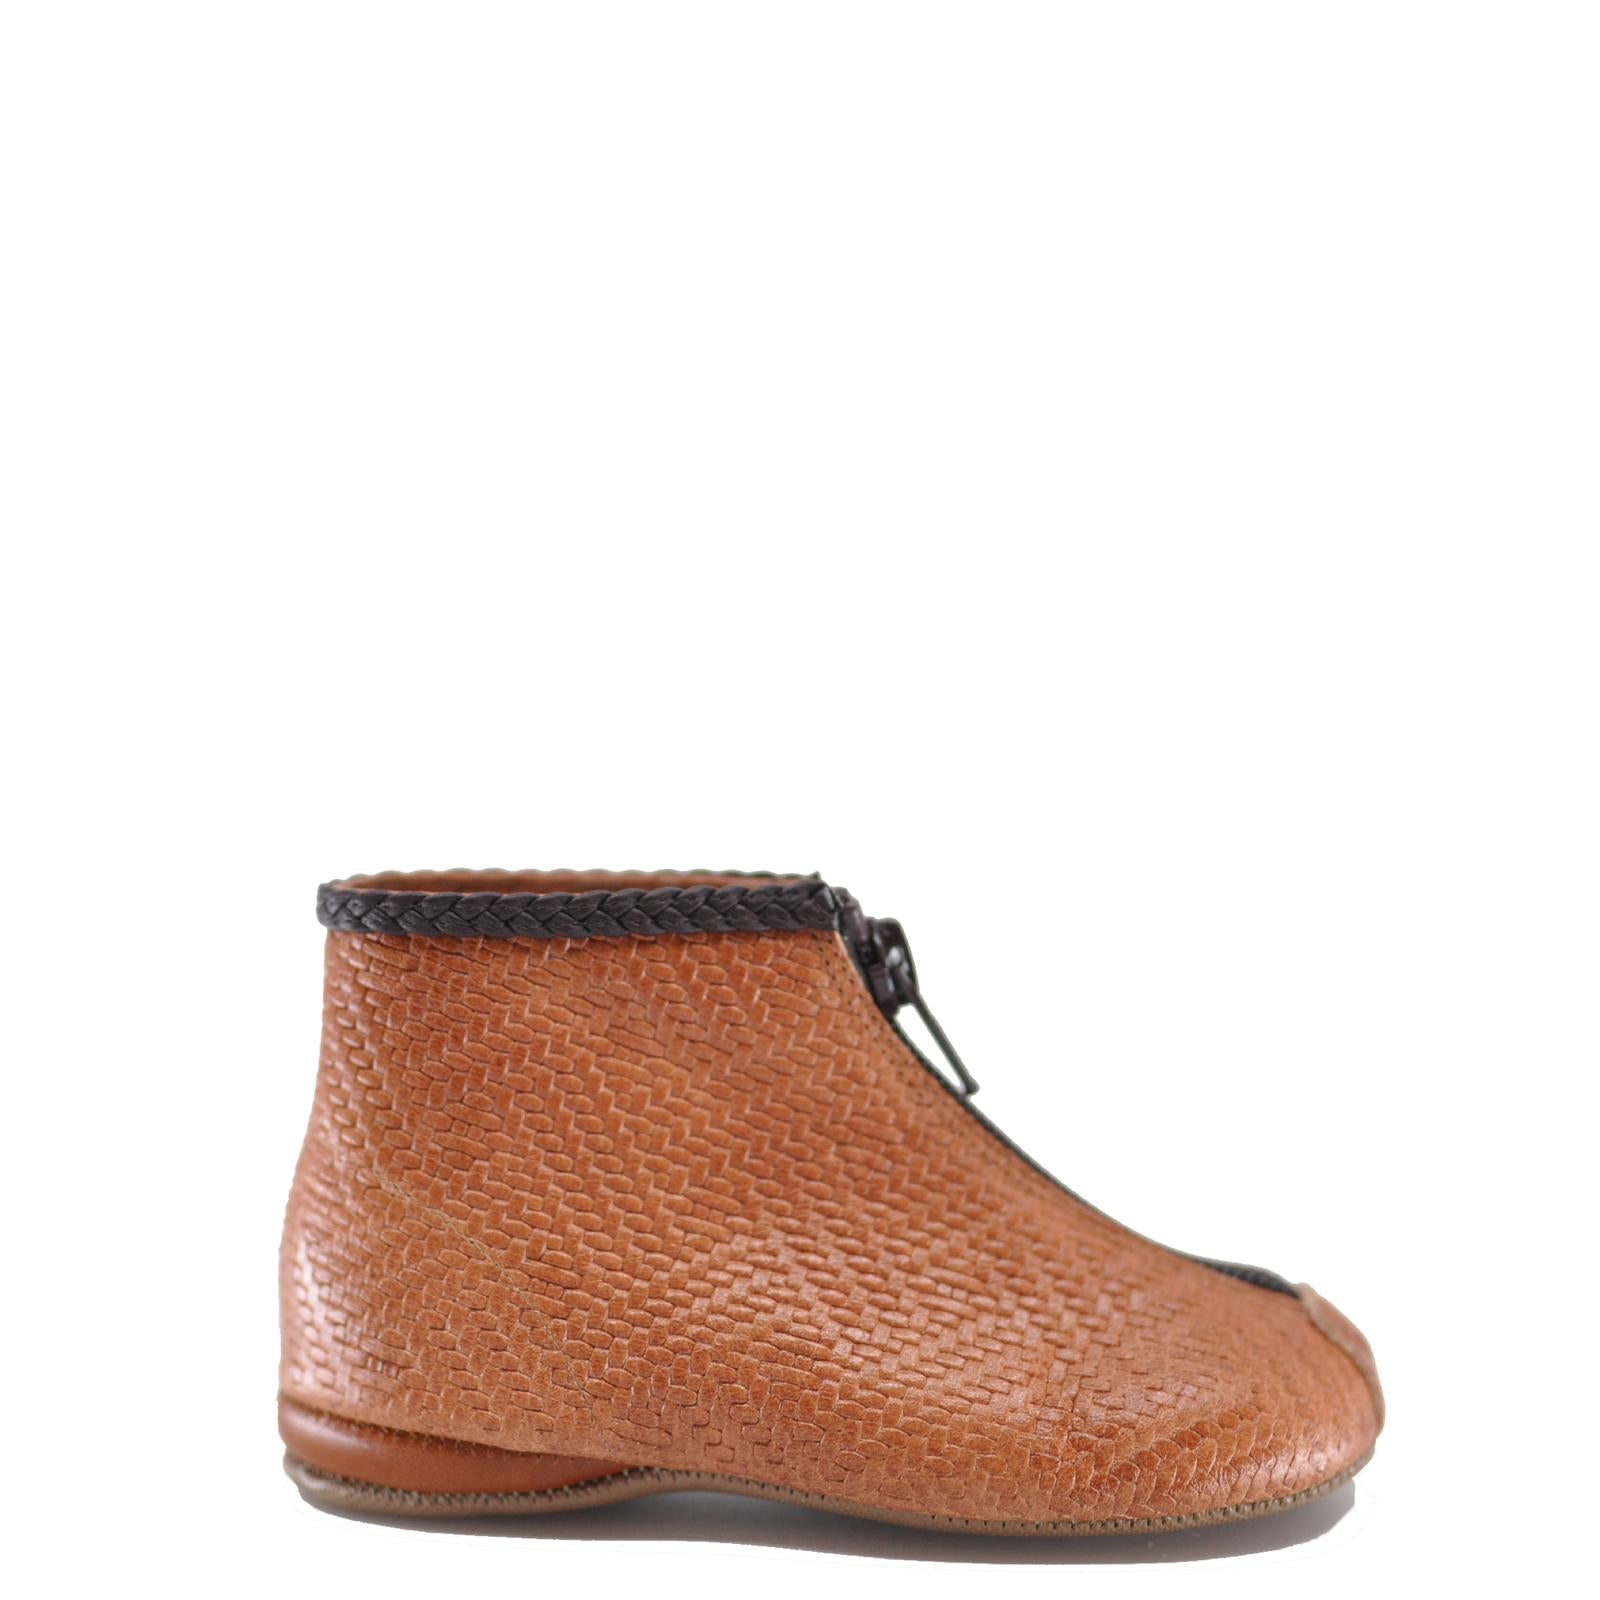 Pepe Luggage Weave Zipper Bootie